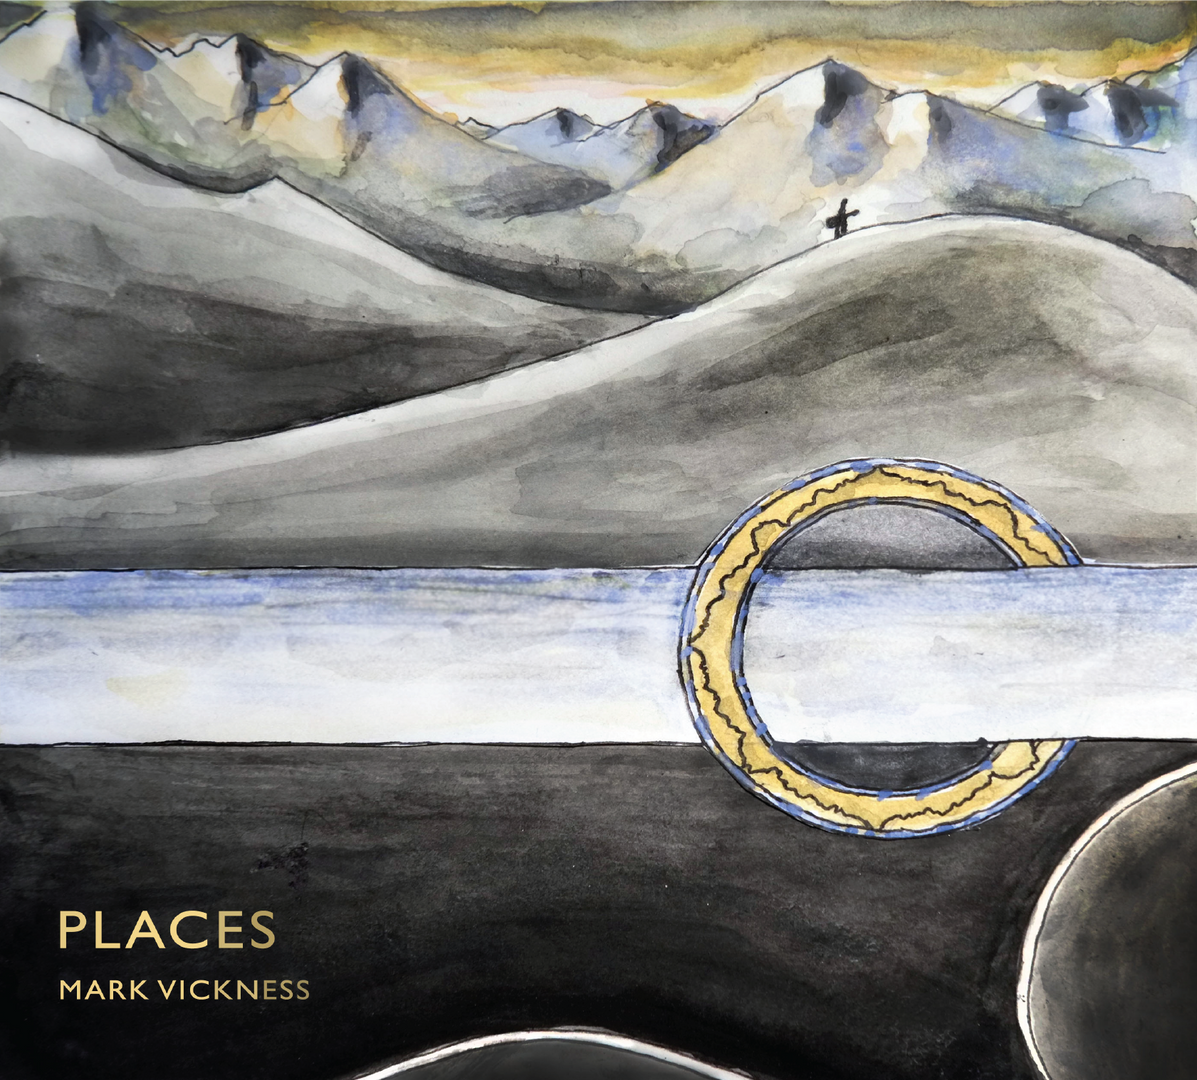 Places - Mark Vickness